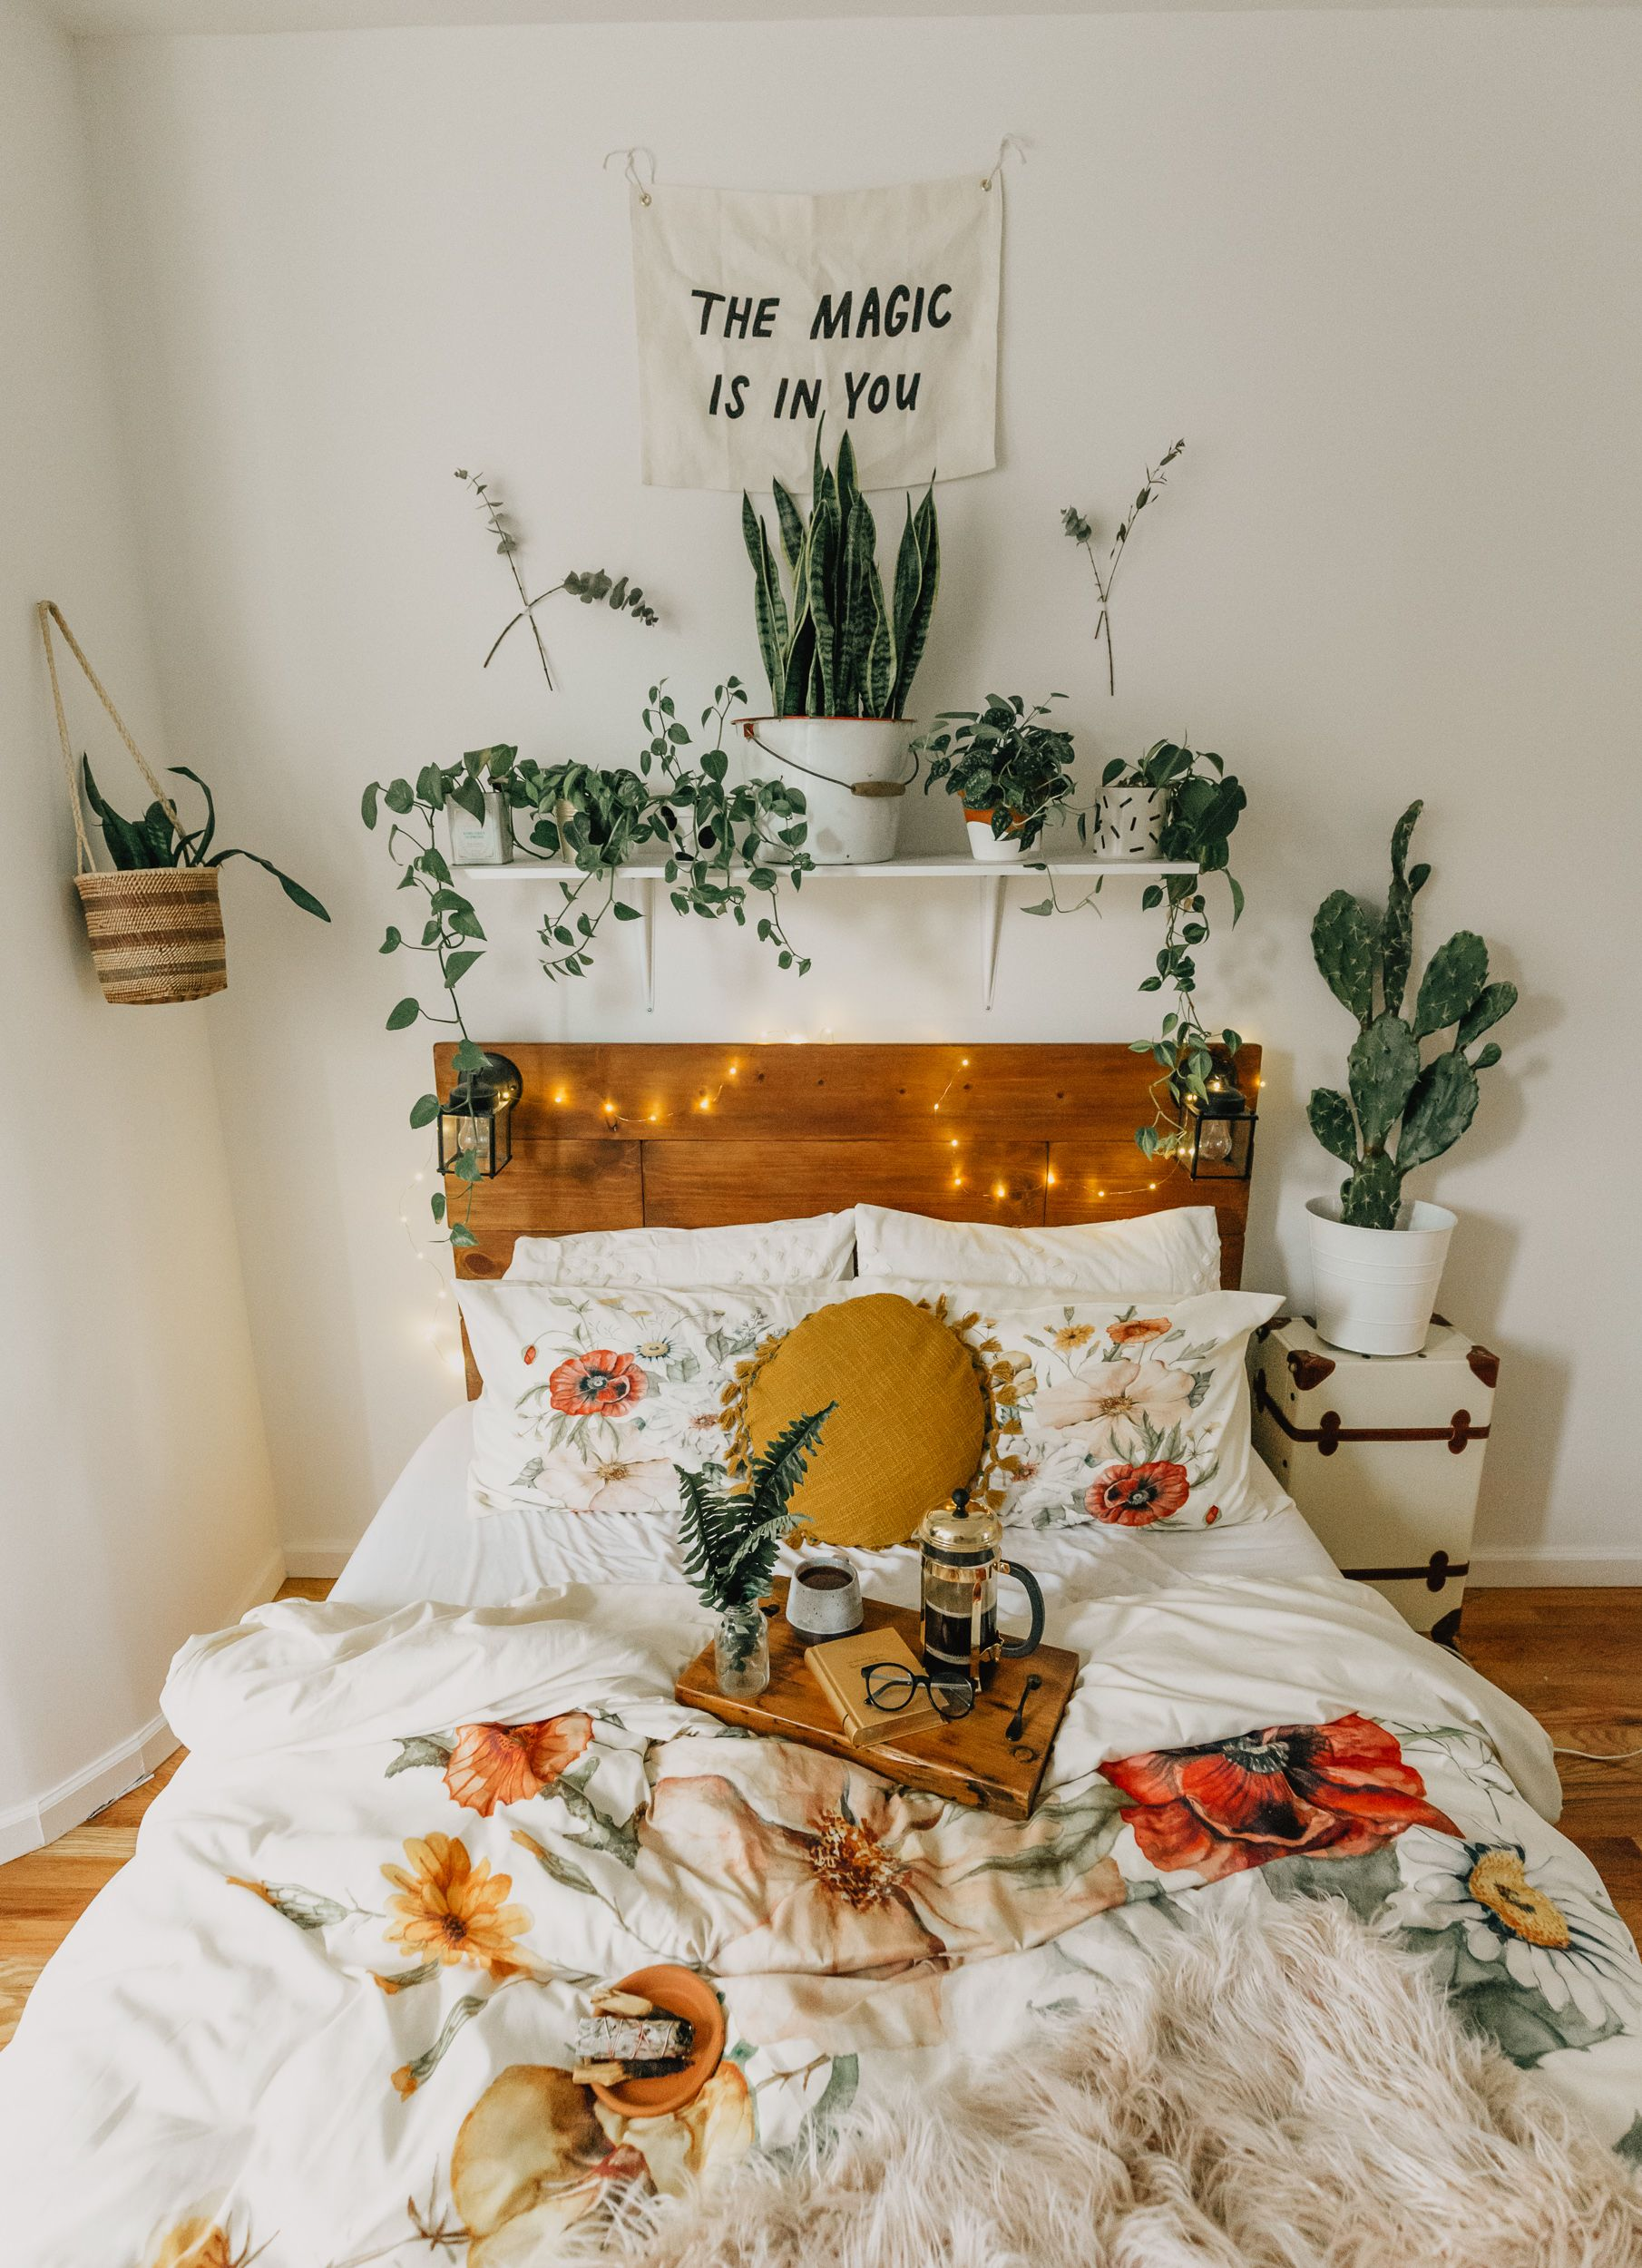 Dorm Room Styles: Dorm Room Styles, Dorm Room Decor, Fall